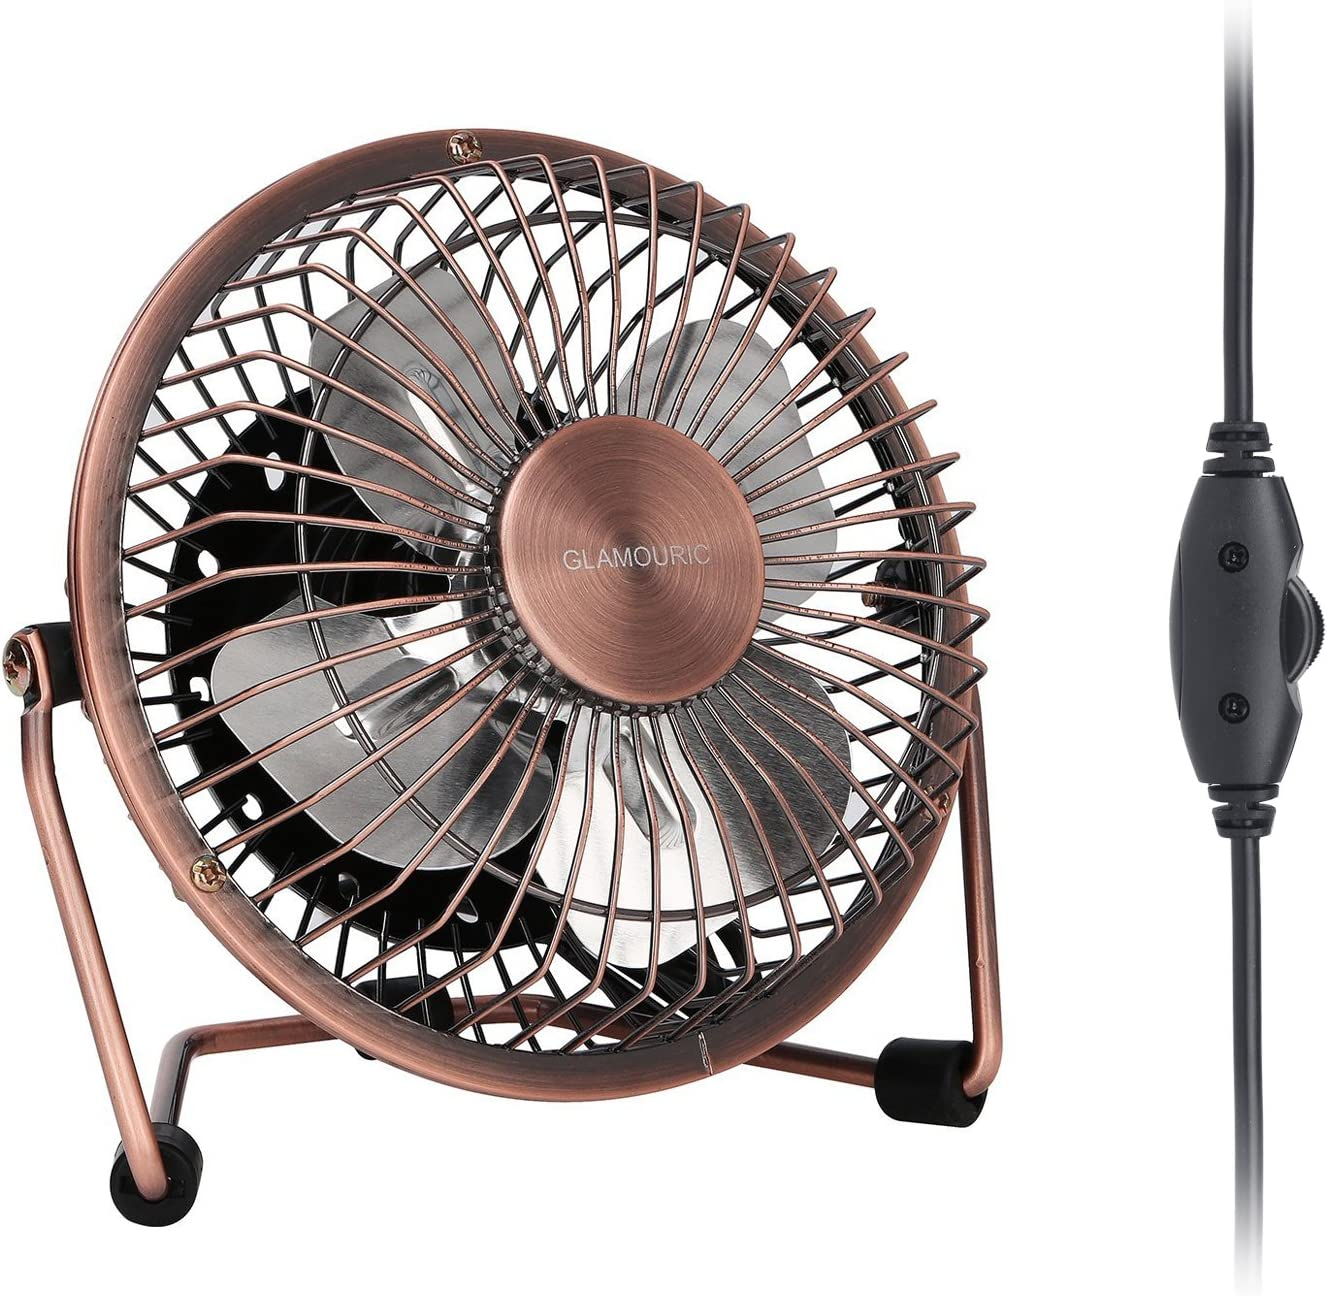 GLAMOURIC Desk Fan – USB Quiet Desk Fan Retro Design Equipped with speed regulator adjust speeds as you like for Work Home School Travel Bronze